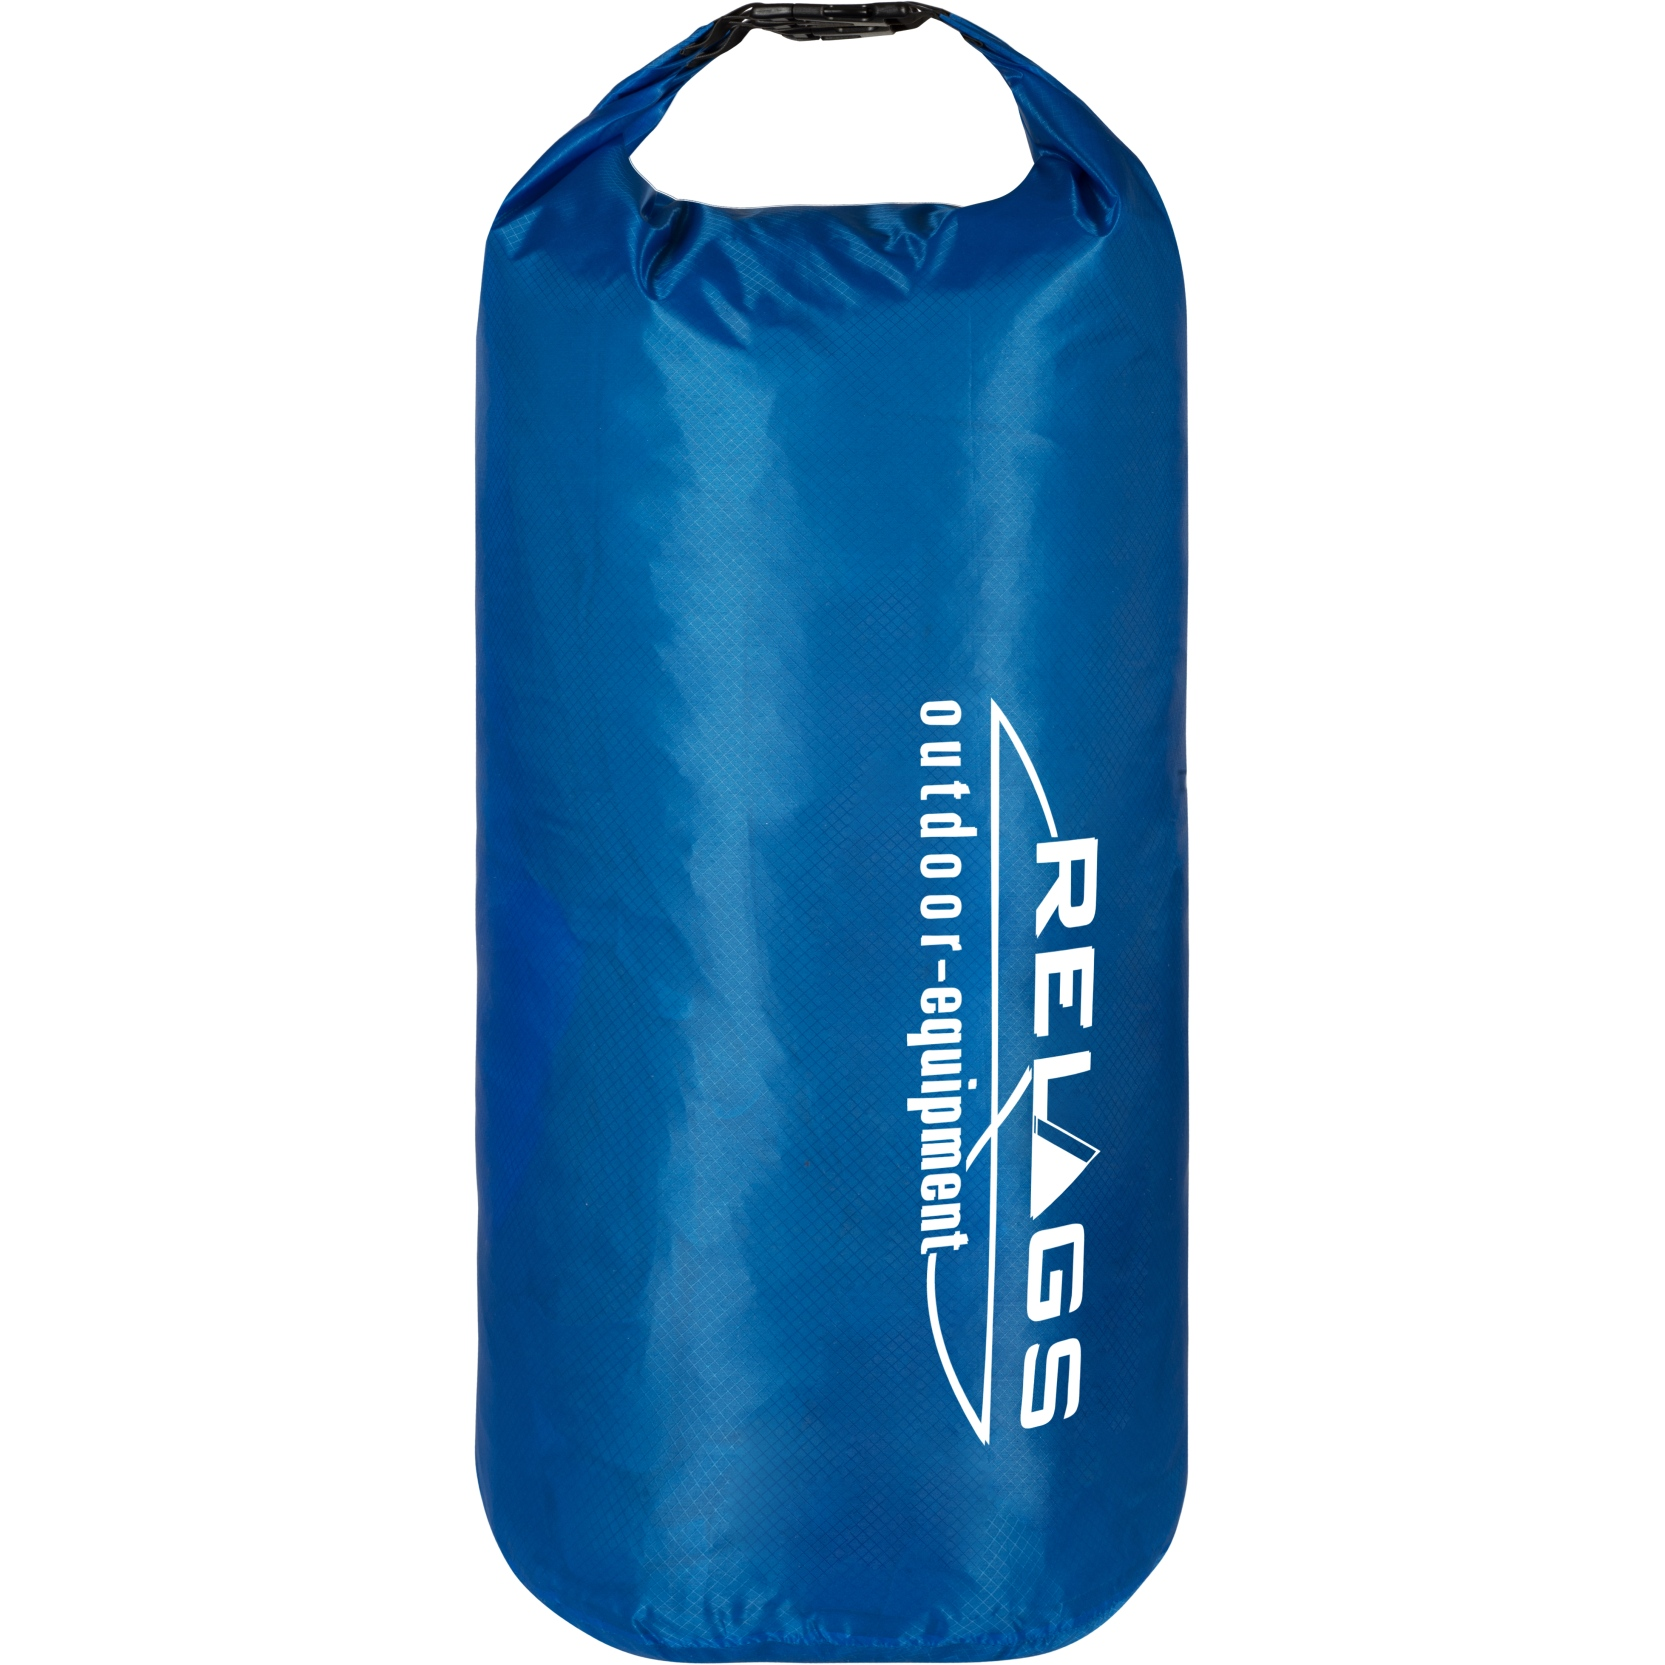 Picture of basic NATURE | Dry Bag 210T 20L - blue